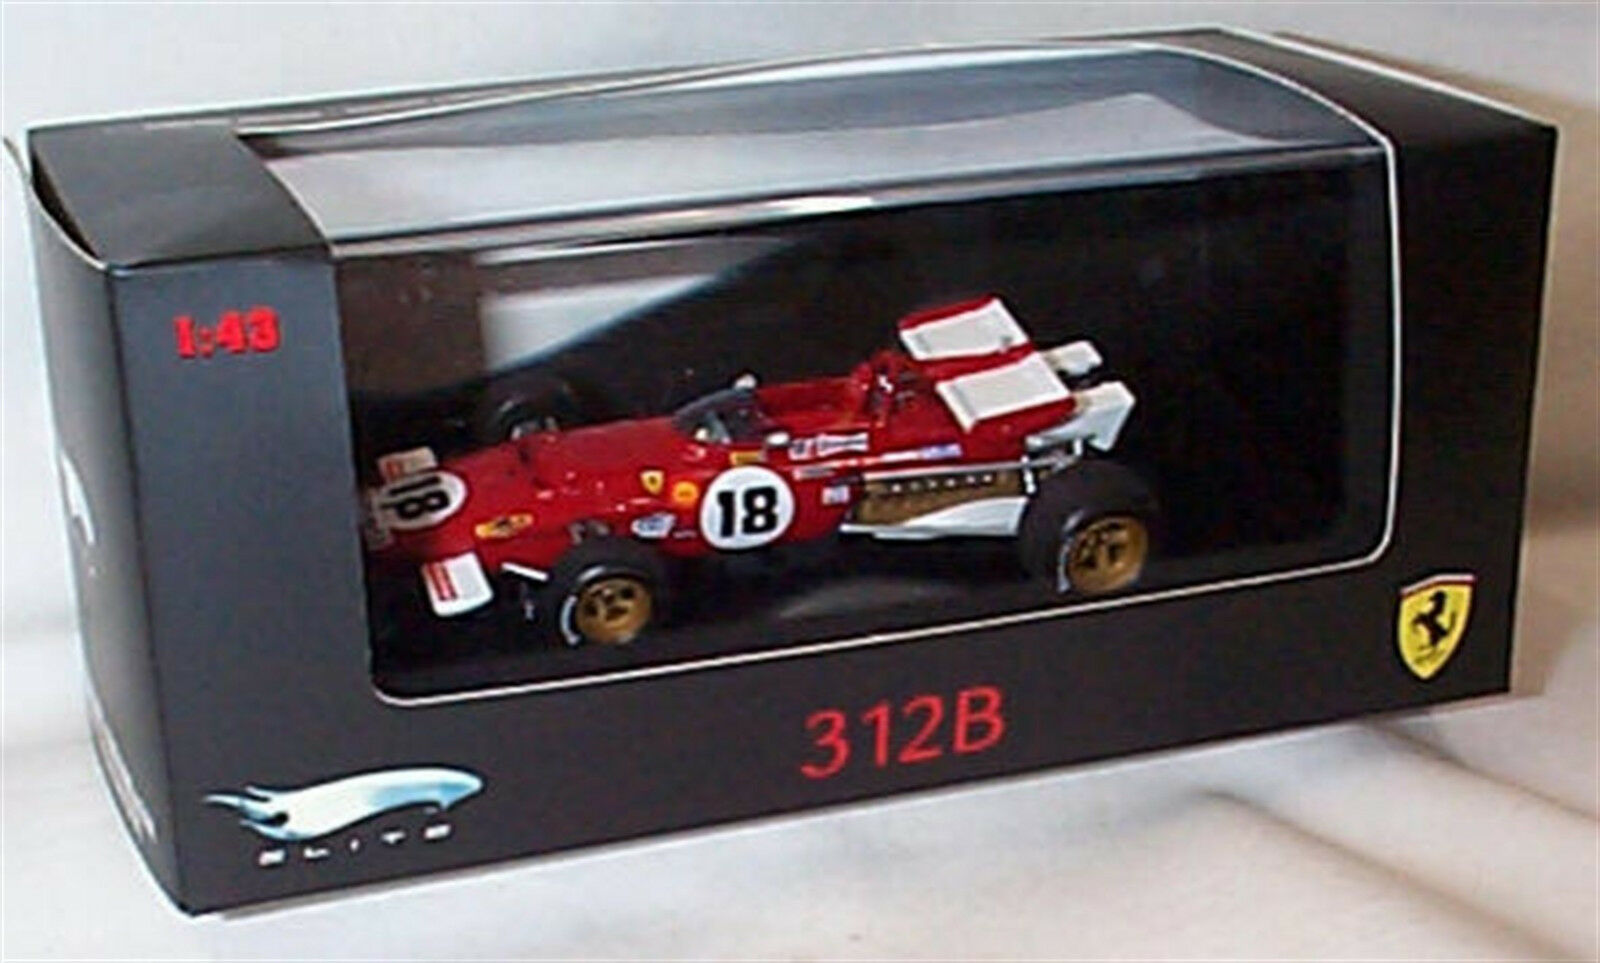 Ferrari 312B No 18 Racing Car Hot Wheels Elite Ltd Editions 1-43 Scale N5588